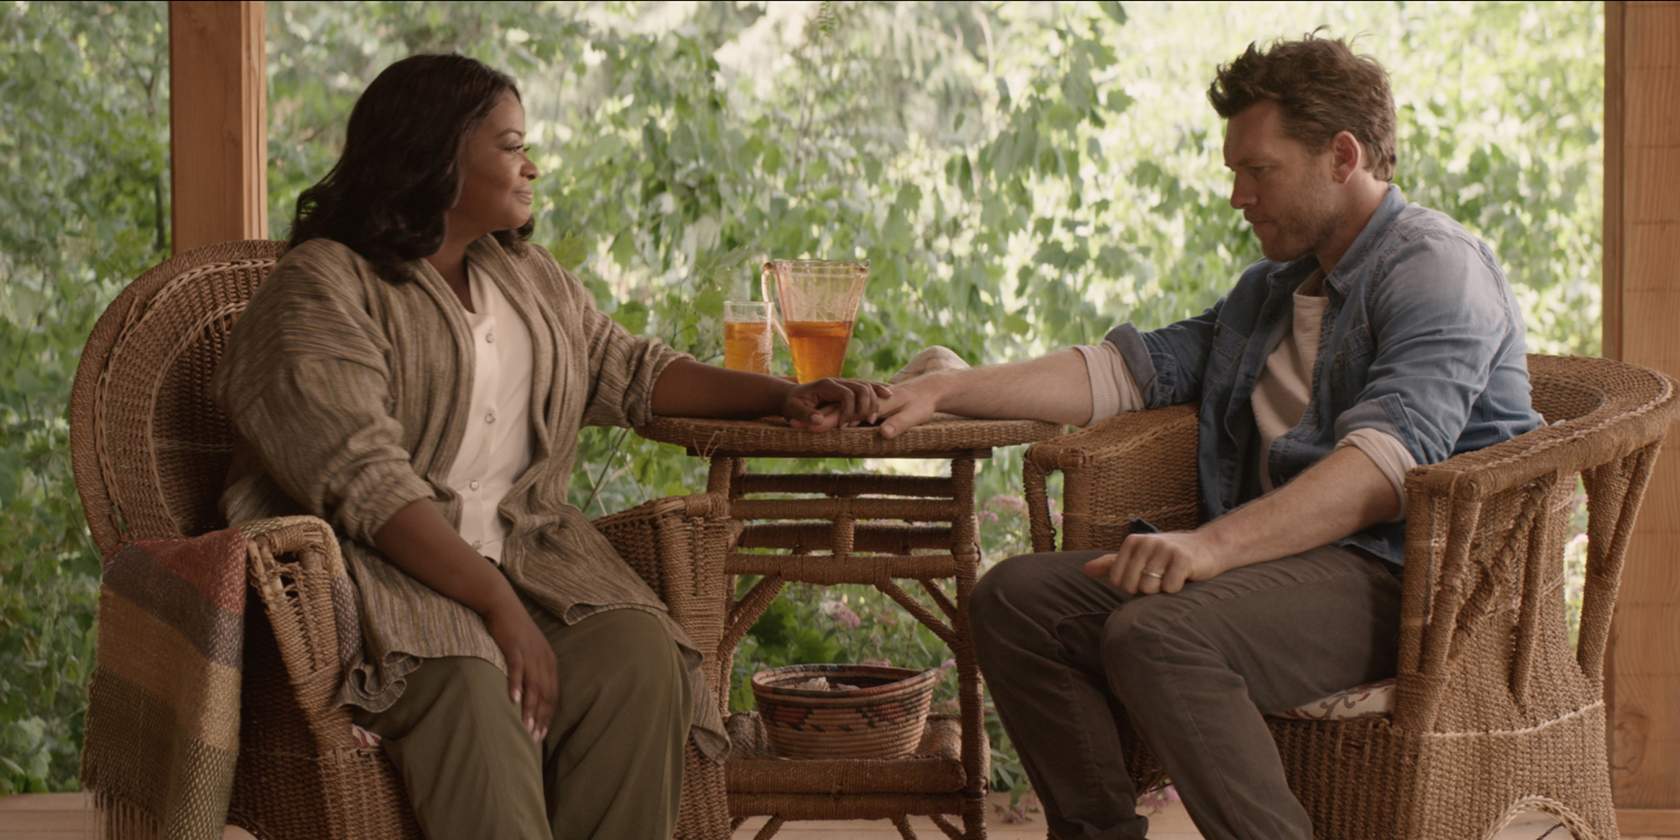 Octavia Spencer and Sam Worthington in The Shack / Pioneer Films